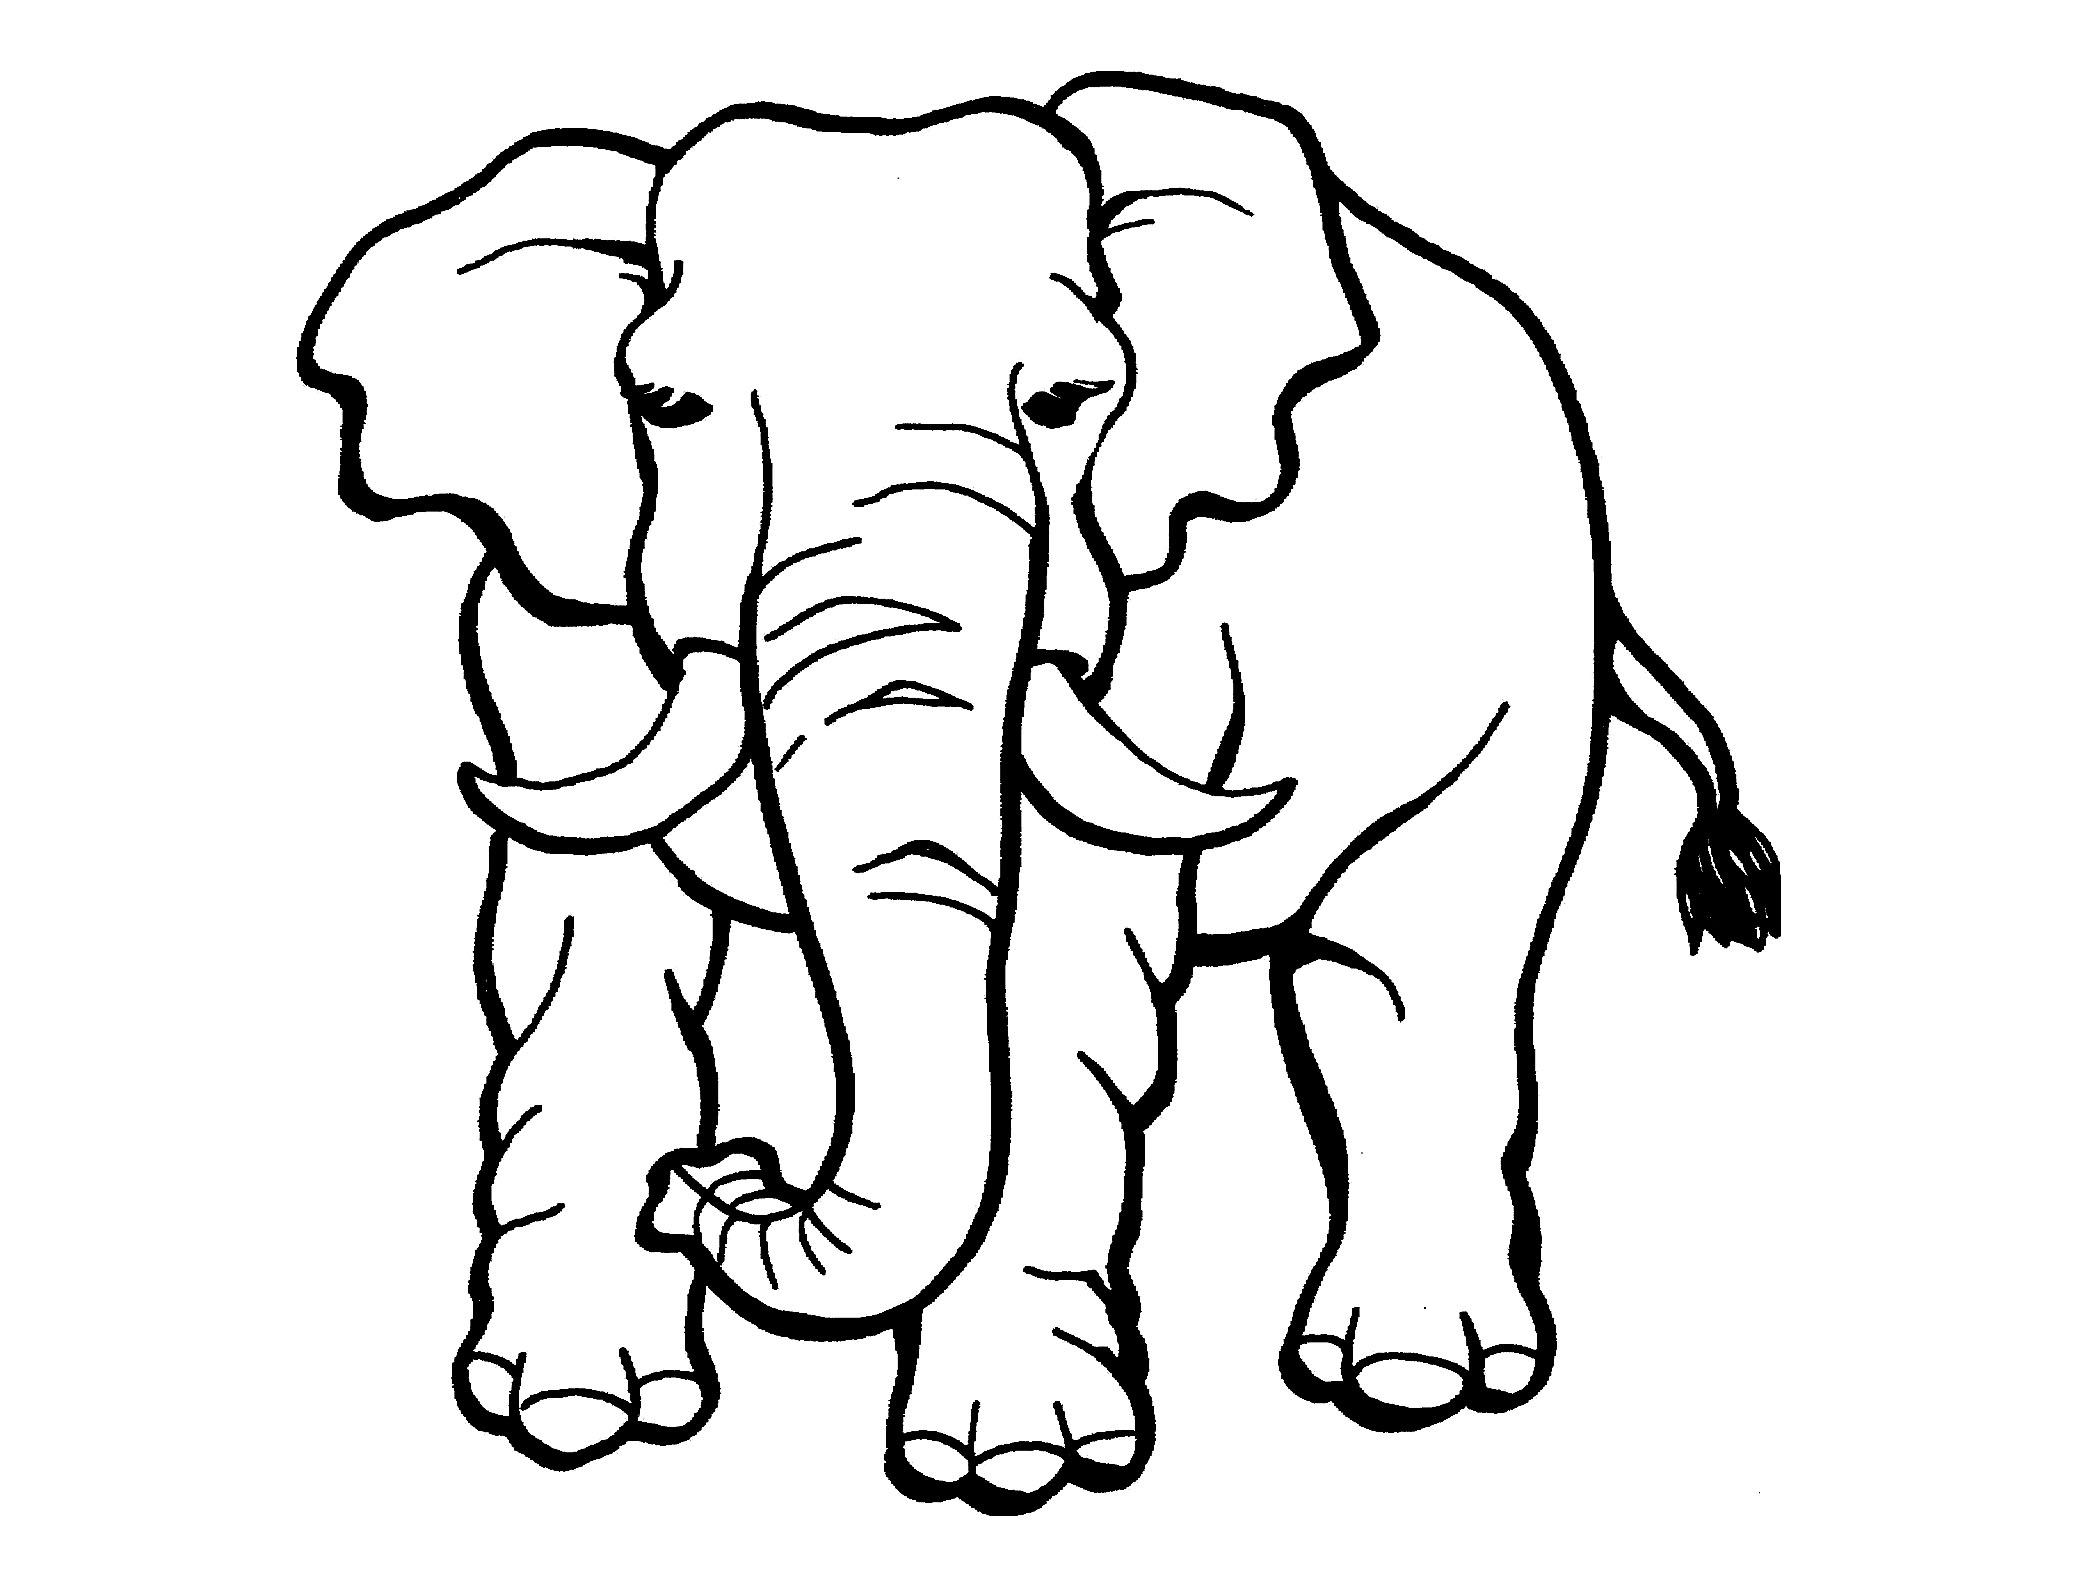 elephant coloring sheets printable baby elephant coloring pages to download and print for free sheets elephant printable coloring